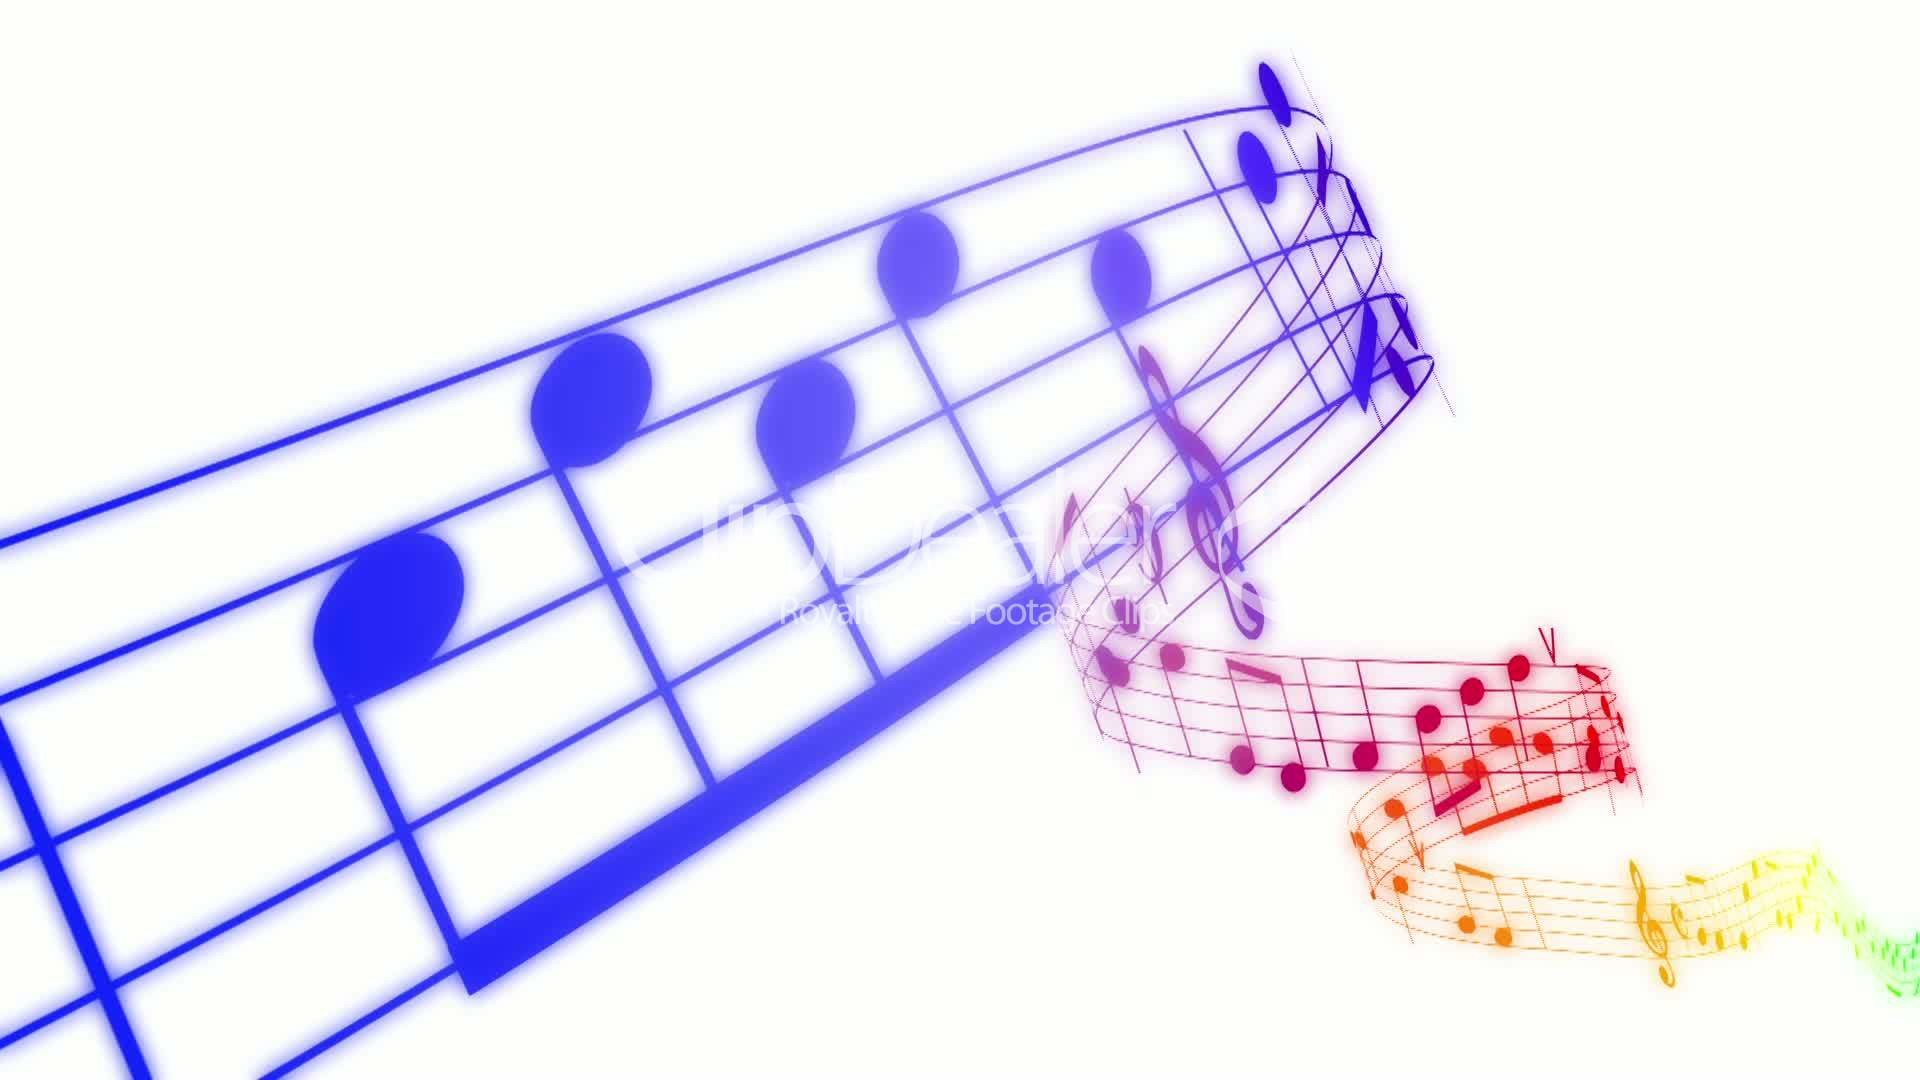 3d%20colorful%20music%20notes%20wallpaper